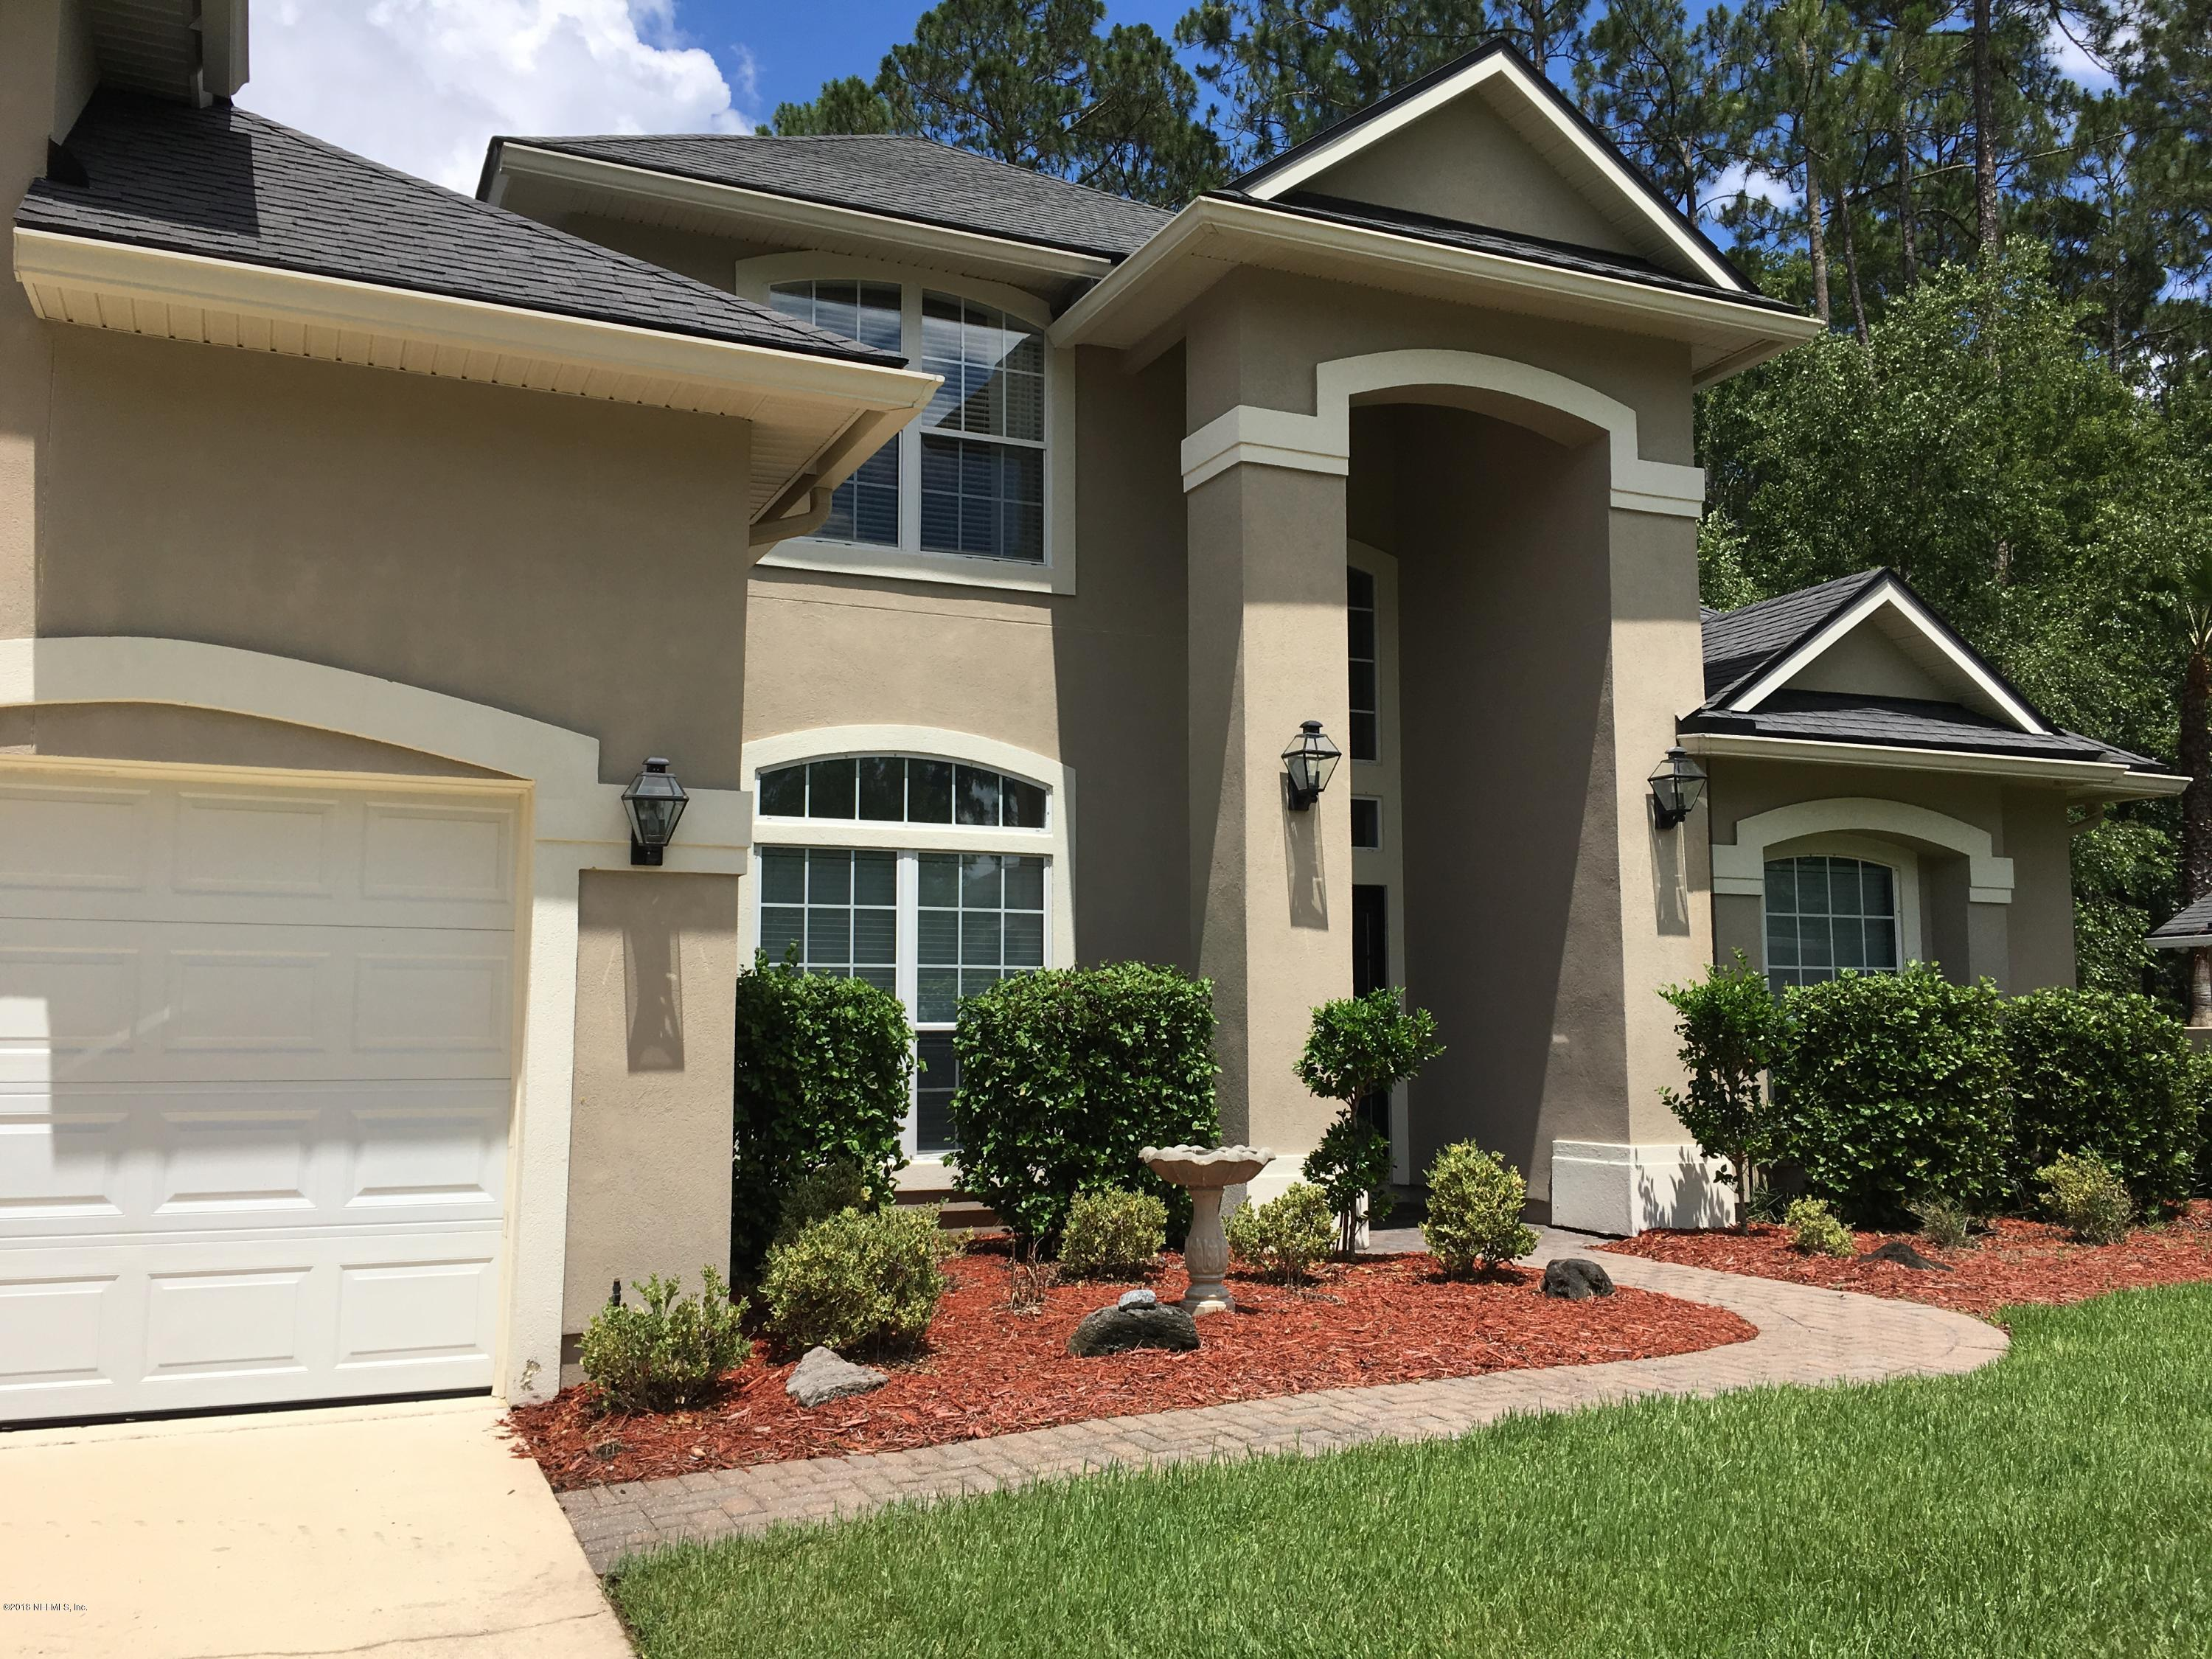 2447 RIPPLE CREEK, FLEMING ISLAND, FLORIDA 32003, 4 Bedrooms Bedrooms, ,2 BathroomsBathrooms,Residential - single family,For sale,RIPPLE CREEK,960129